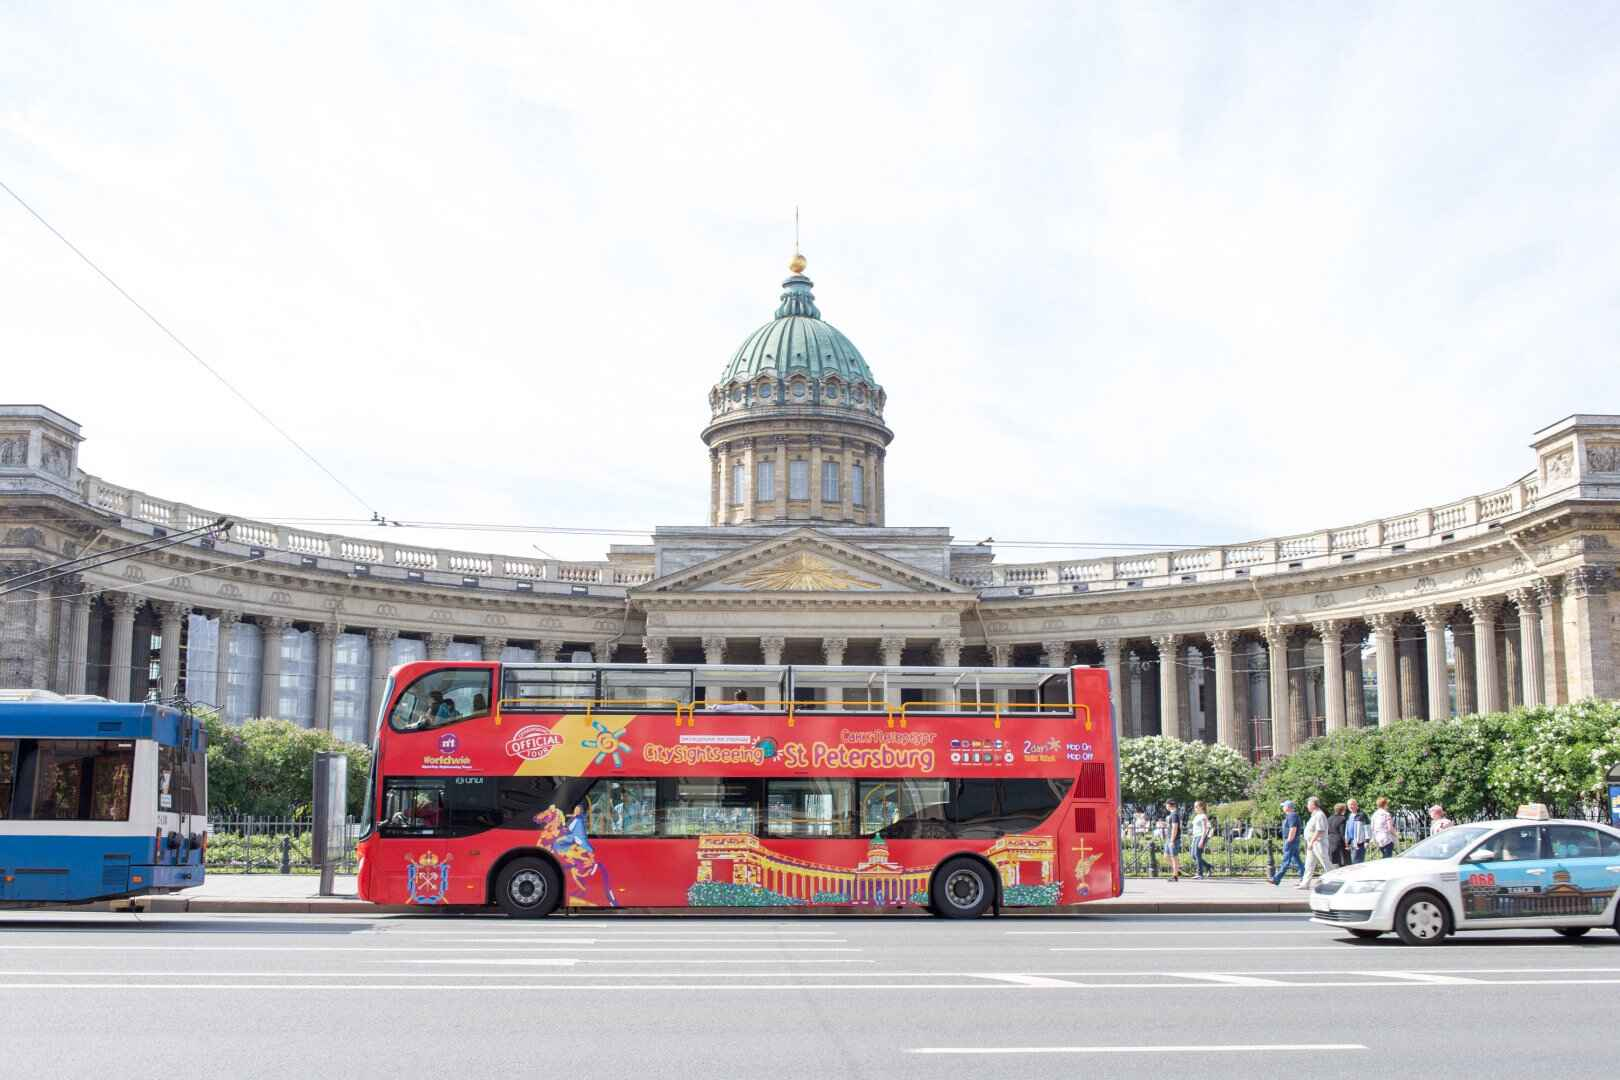 : Sightseeing tour across St. Petersburg by bus | Buses City Sightseeing | Map St. Petersburg City Pass, Фото 1